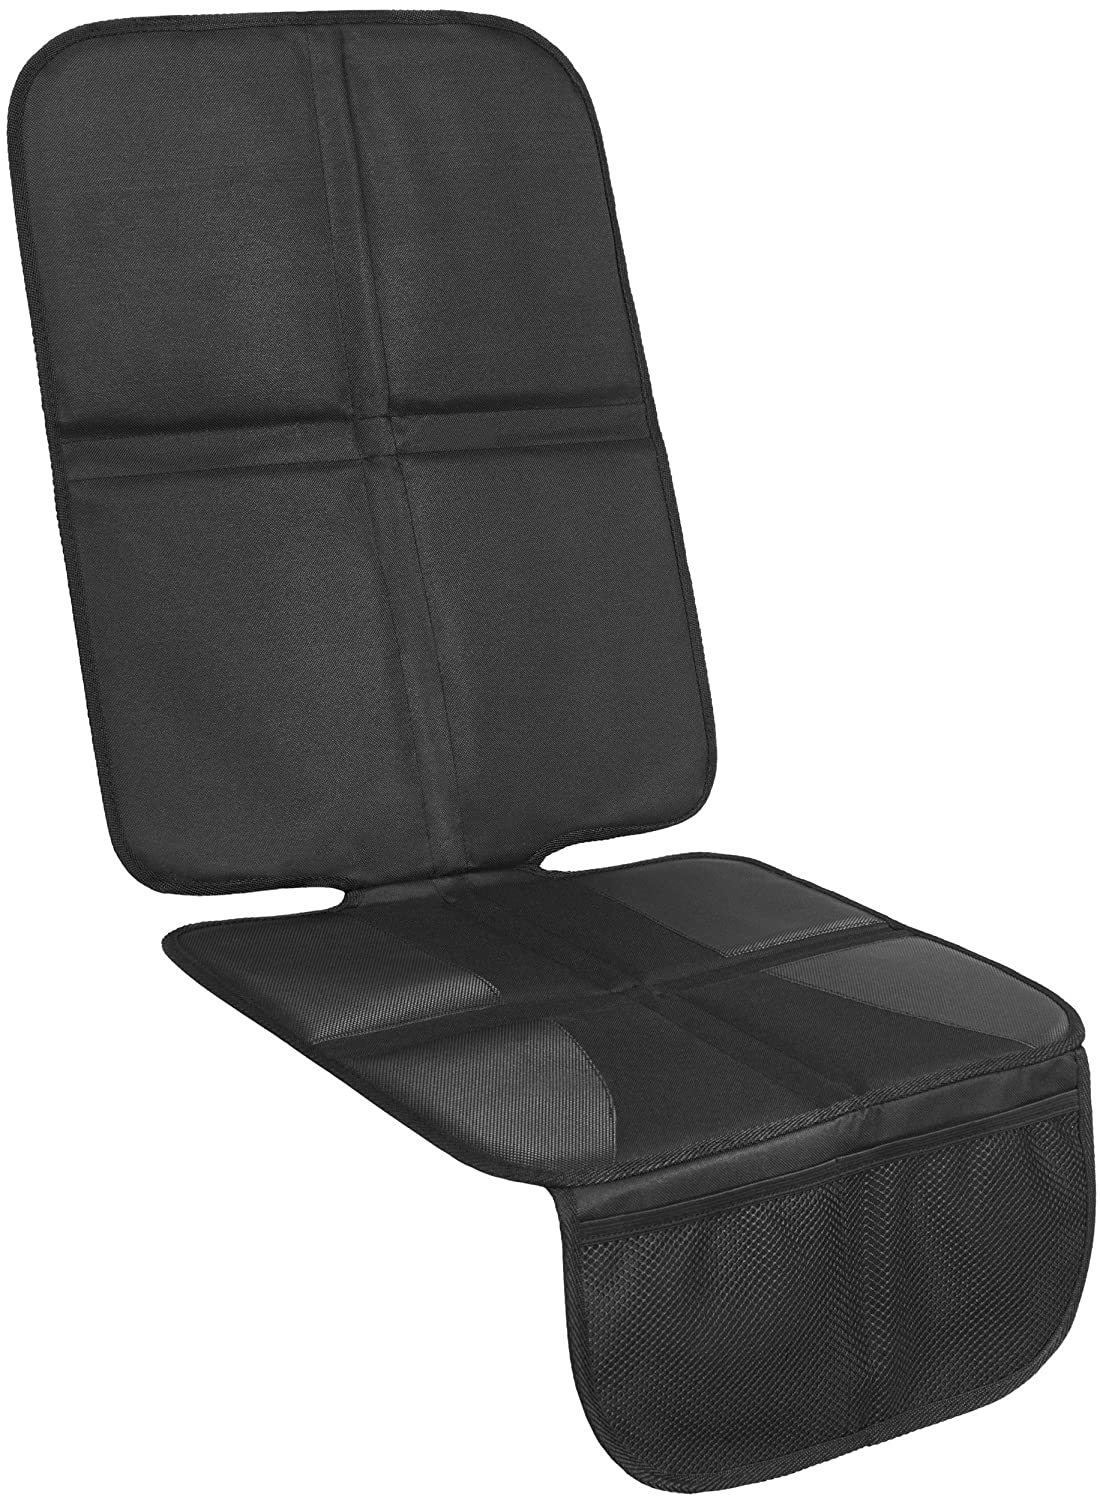 Protector HEAVY-DUTY by Steppenläufer | 10mm Padding For Best Upholstery Protection - ISOFIX & Organizer Pockets